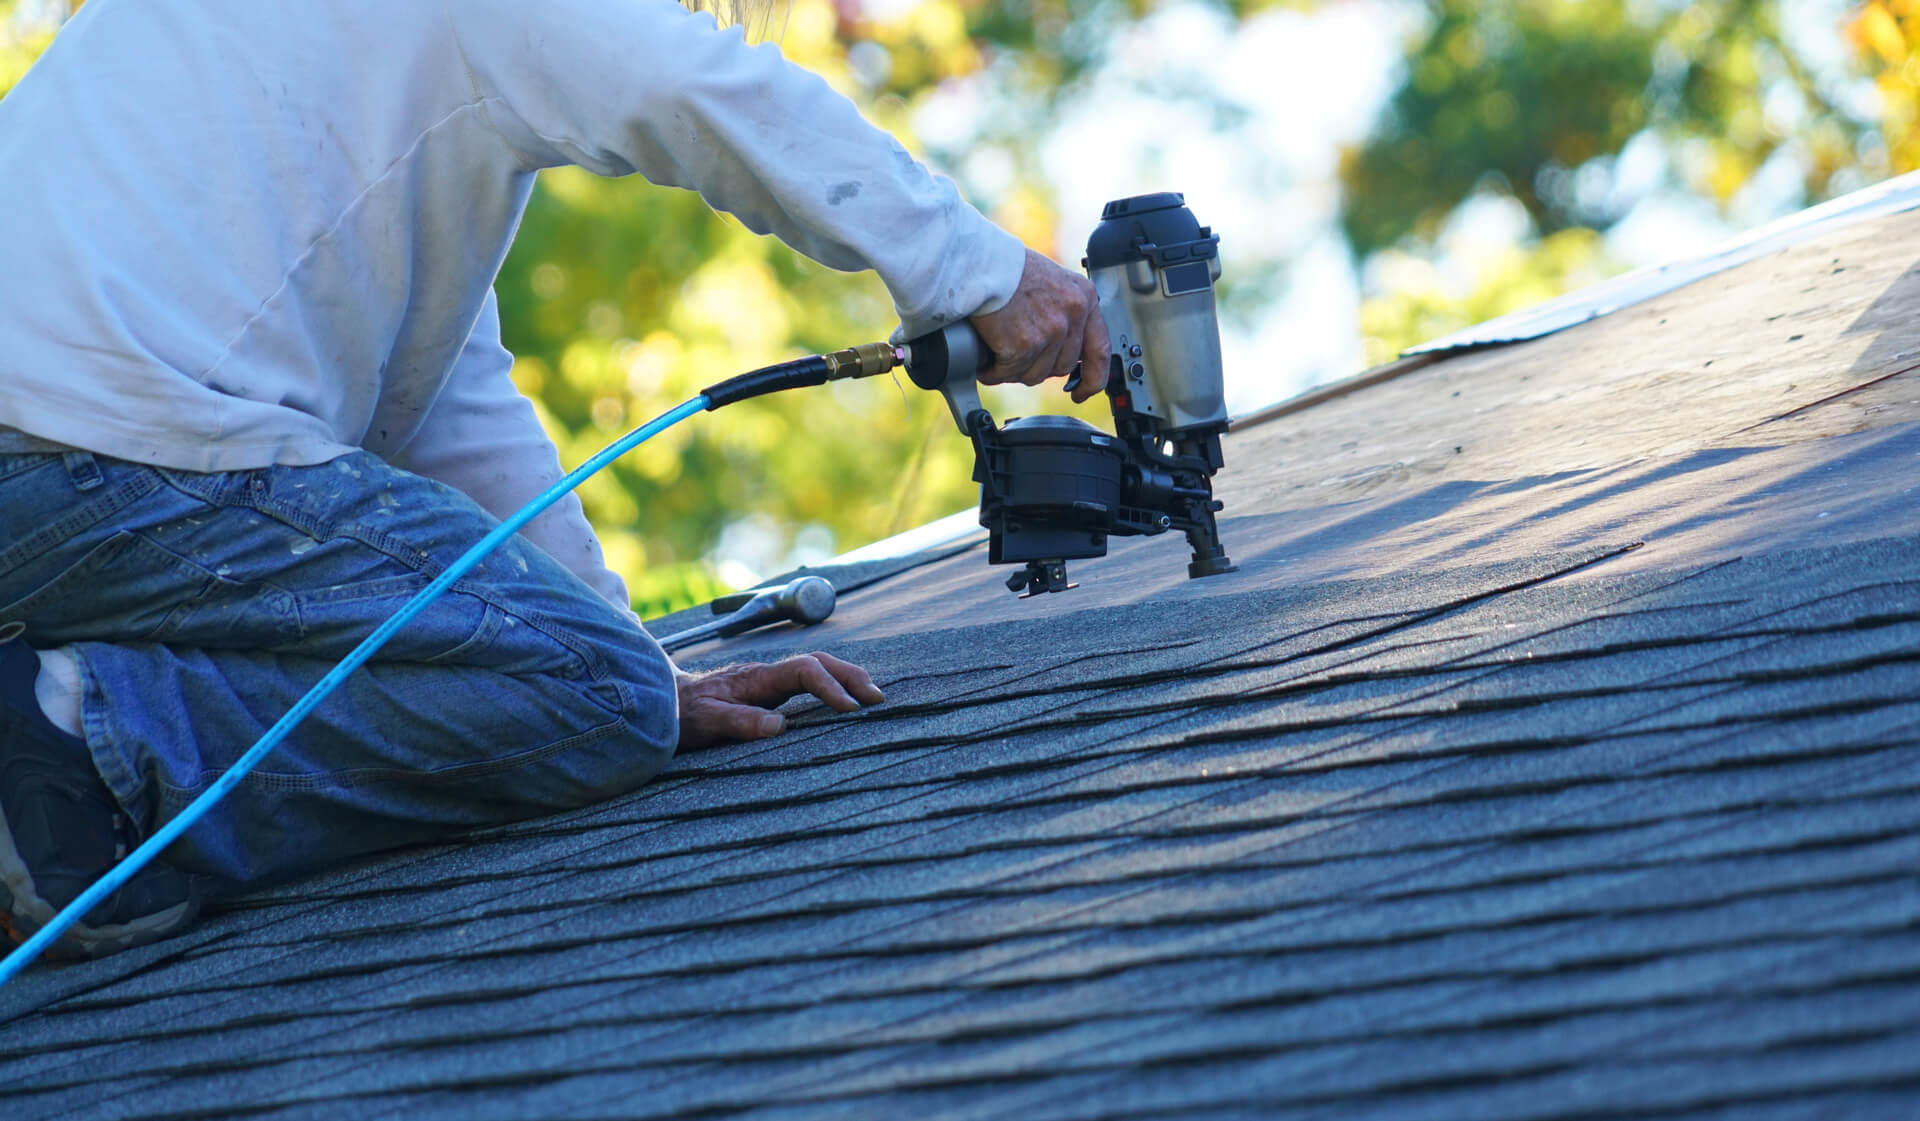 Roofing Contractor In Dallas Completing Roof Replacement